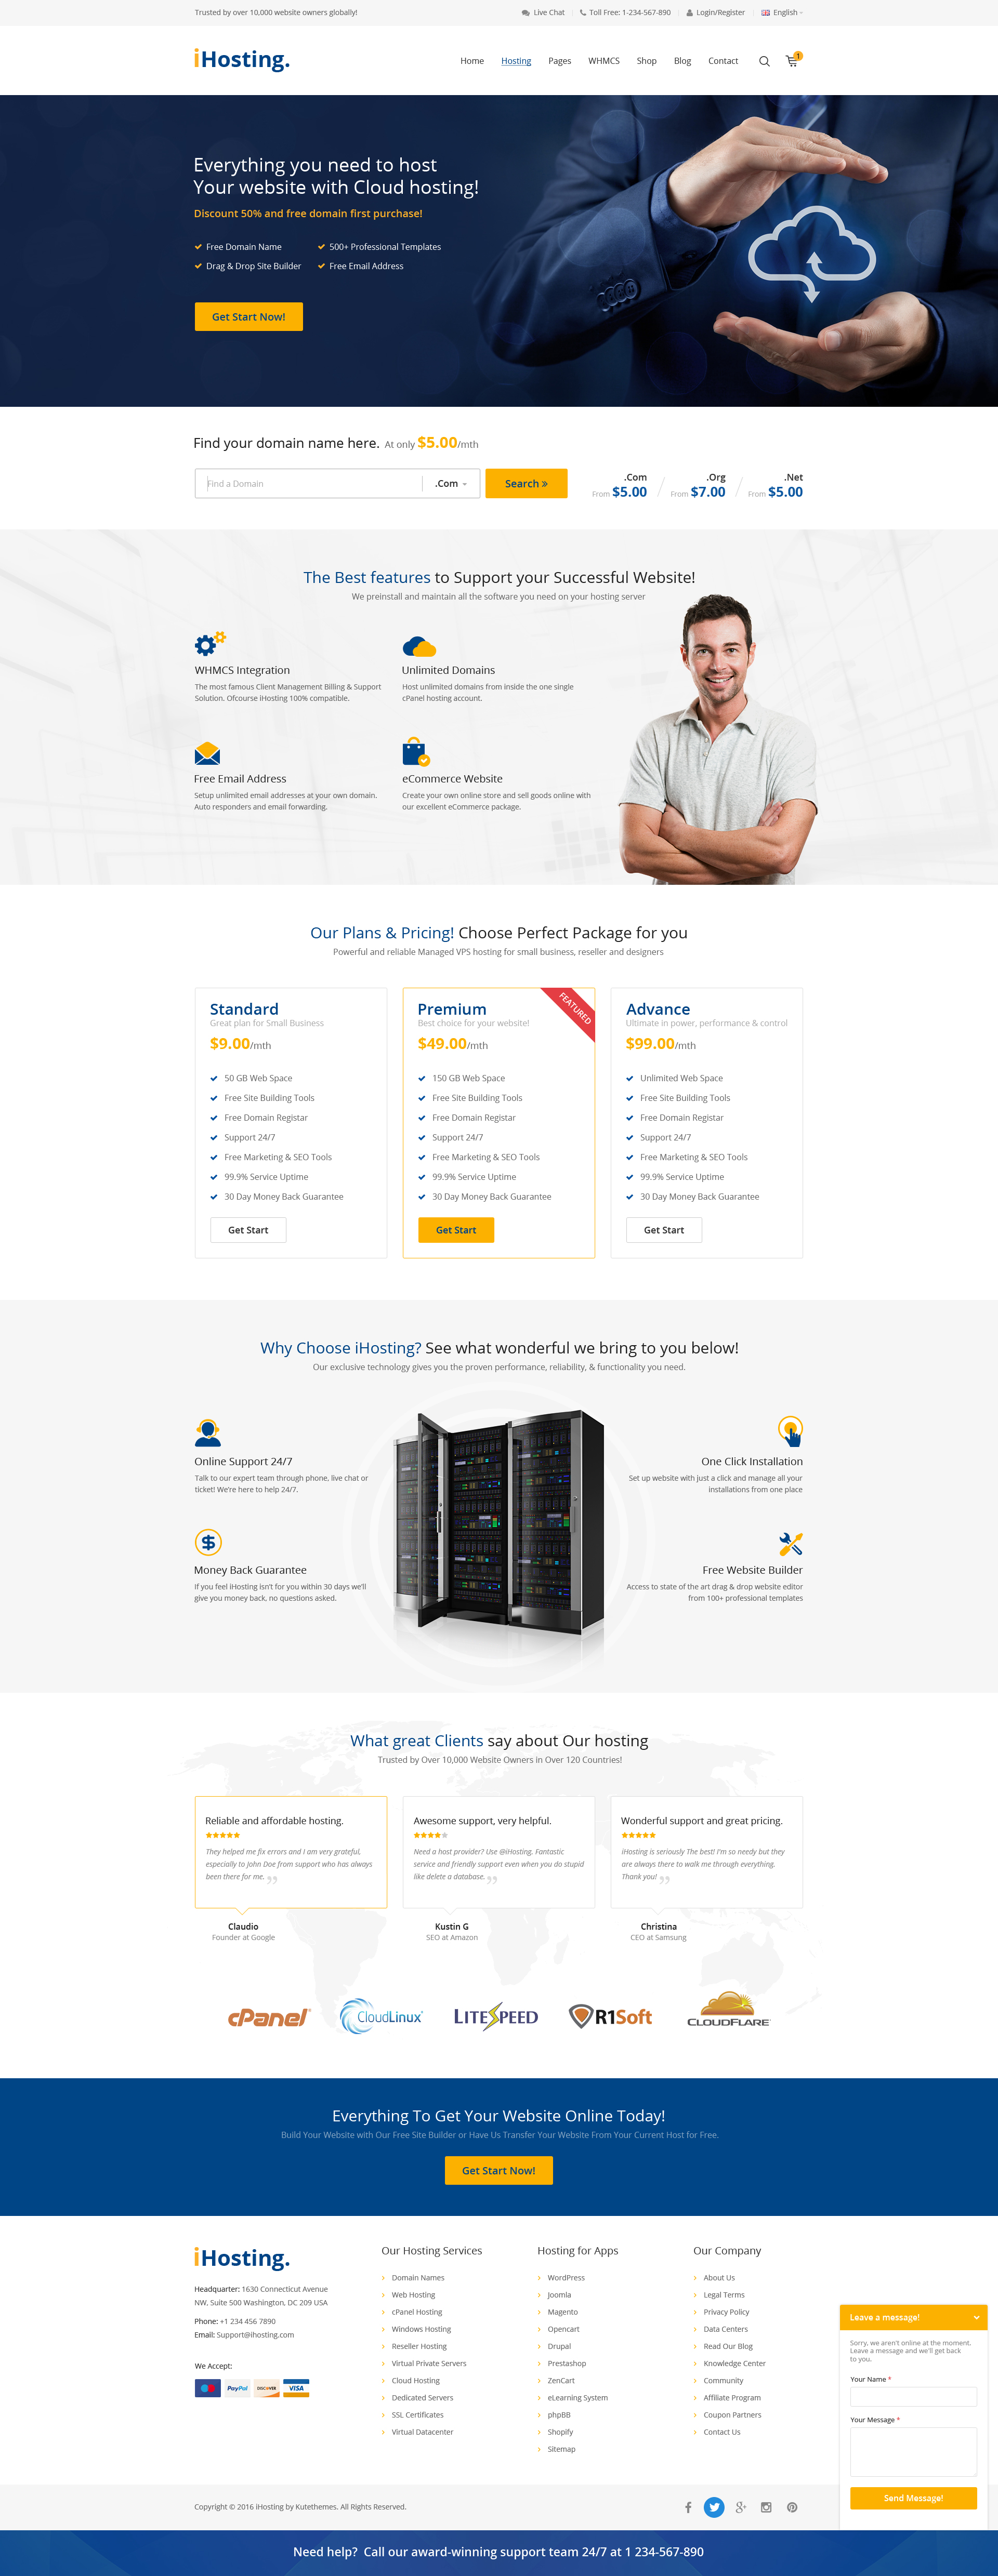 iHosting - SEO WHMCS Hosting, Shop & Business PSD Template by PSDGirl